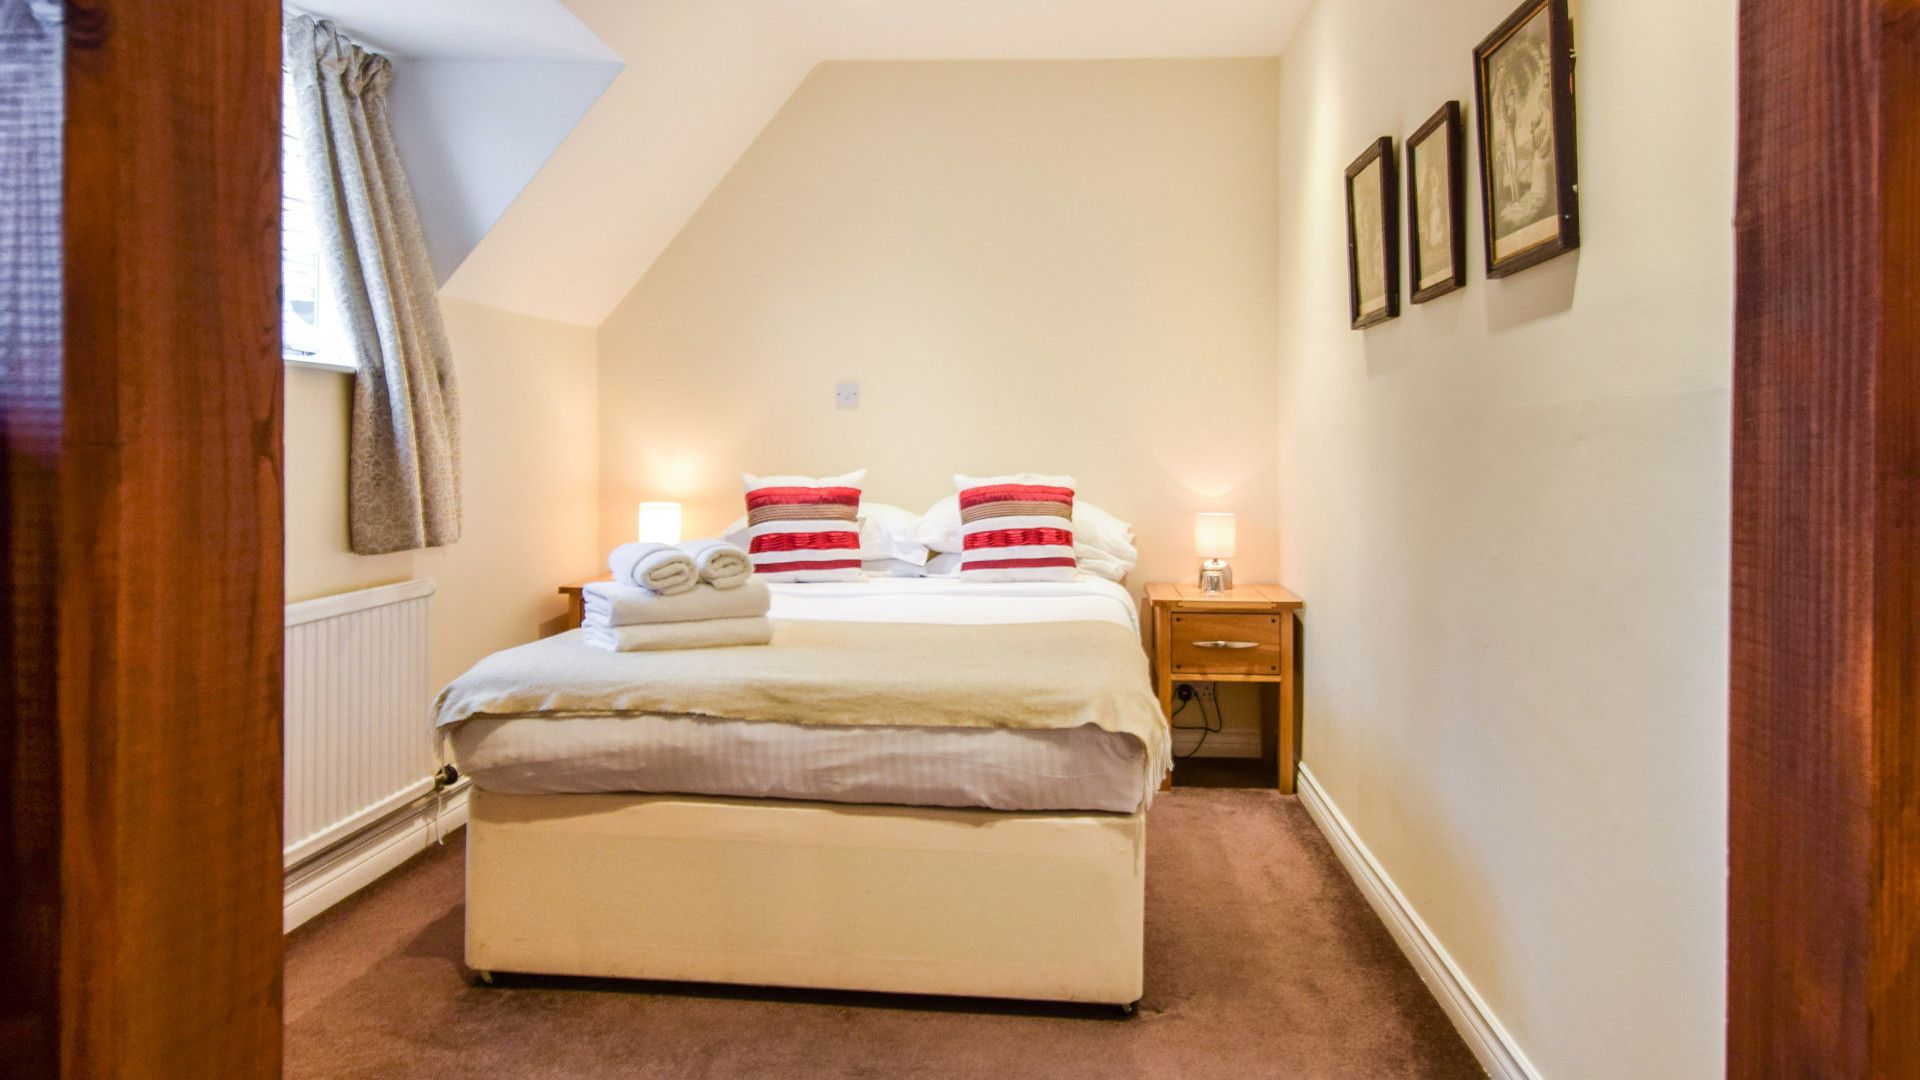 Bedroom 1, Queen Mary Cottage at Sudeley Castle, Bolthole Retreats